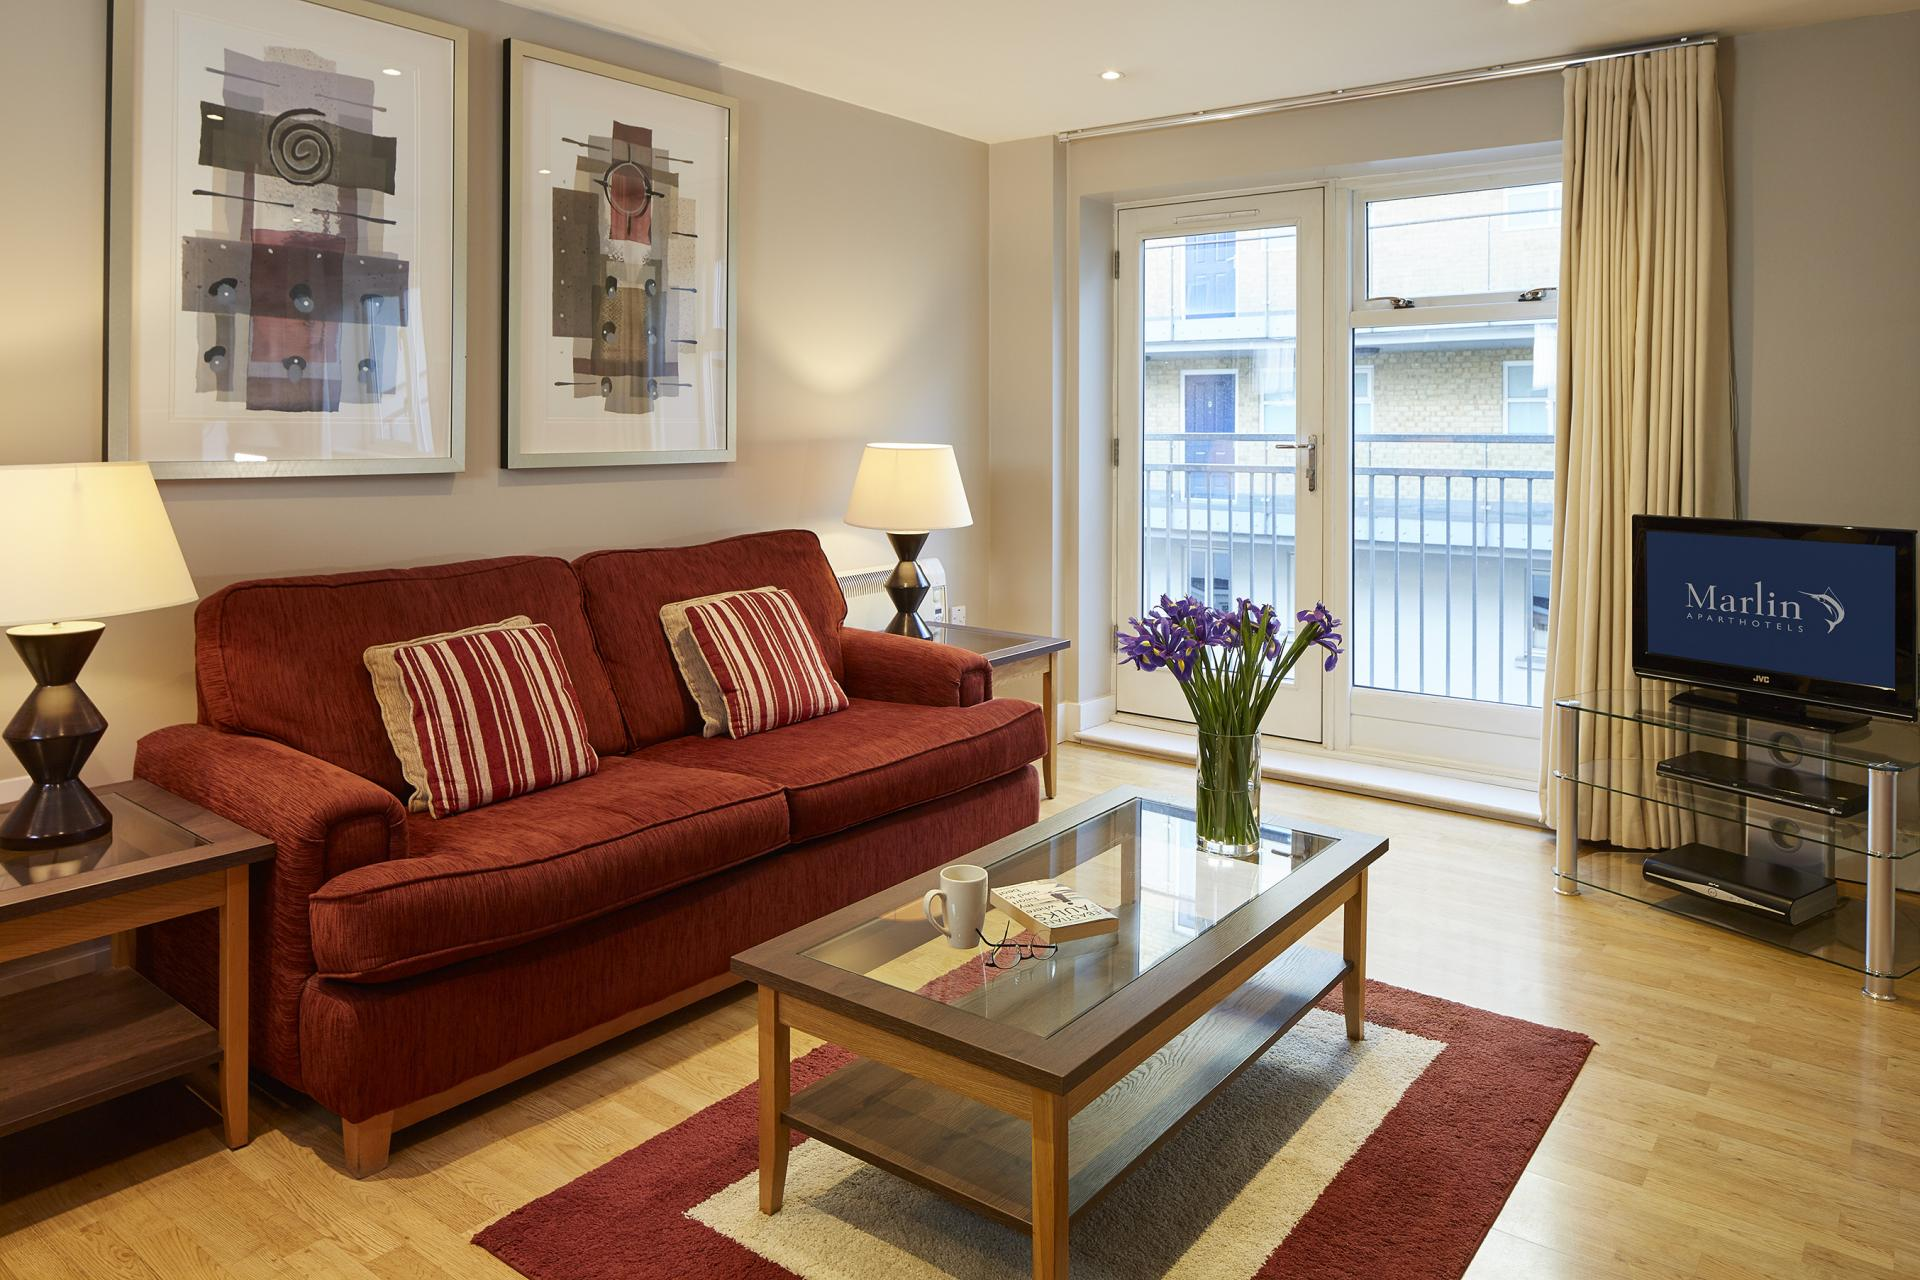 Sofa at Limehouse Apartments, Limehouse, London - Citybase Apartments